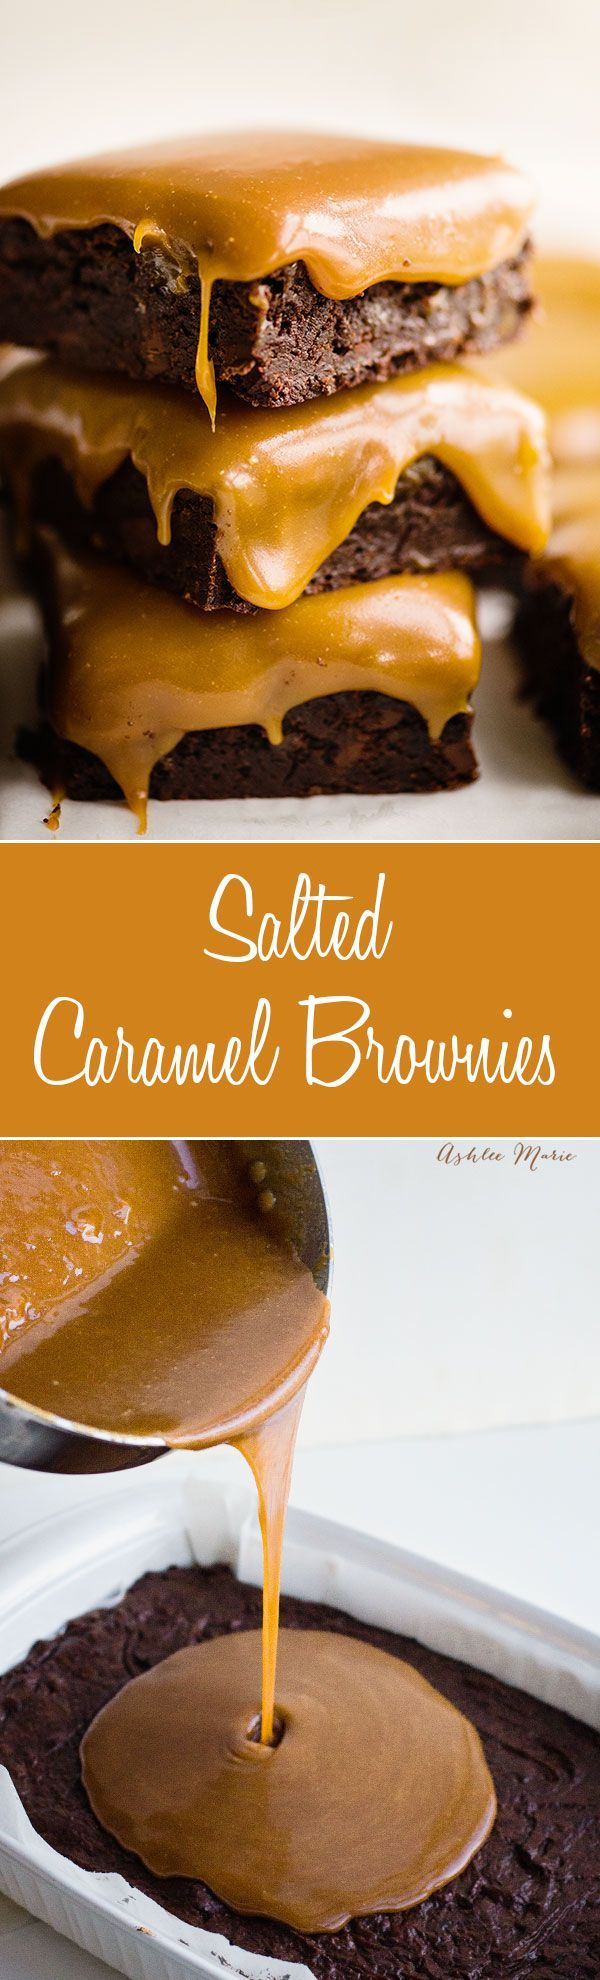 it doesn't get more delicious (or messy) than these salted caramel chocolate brownies